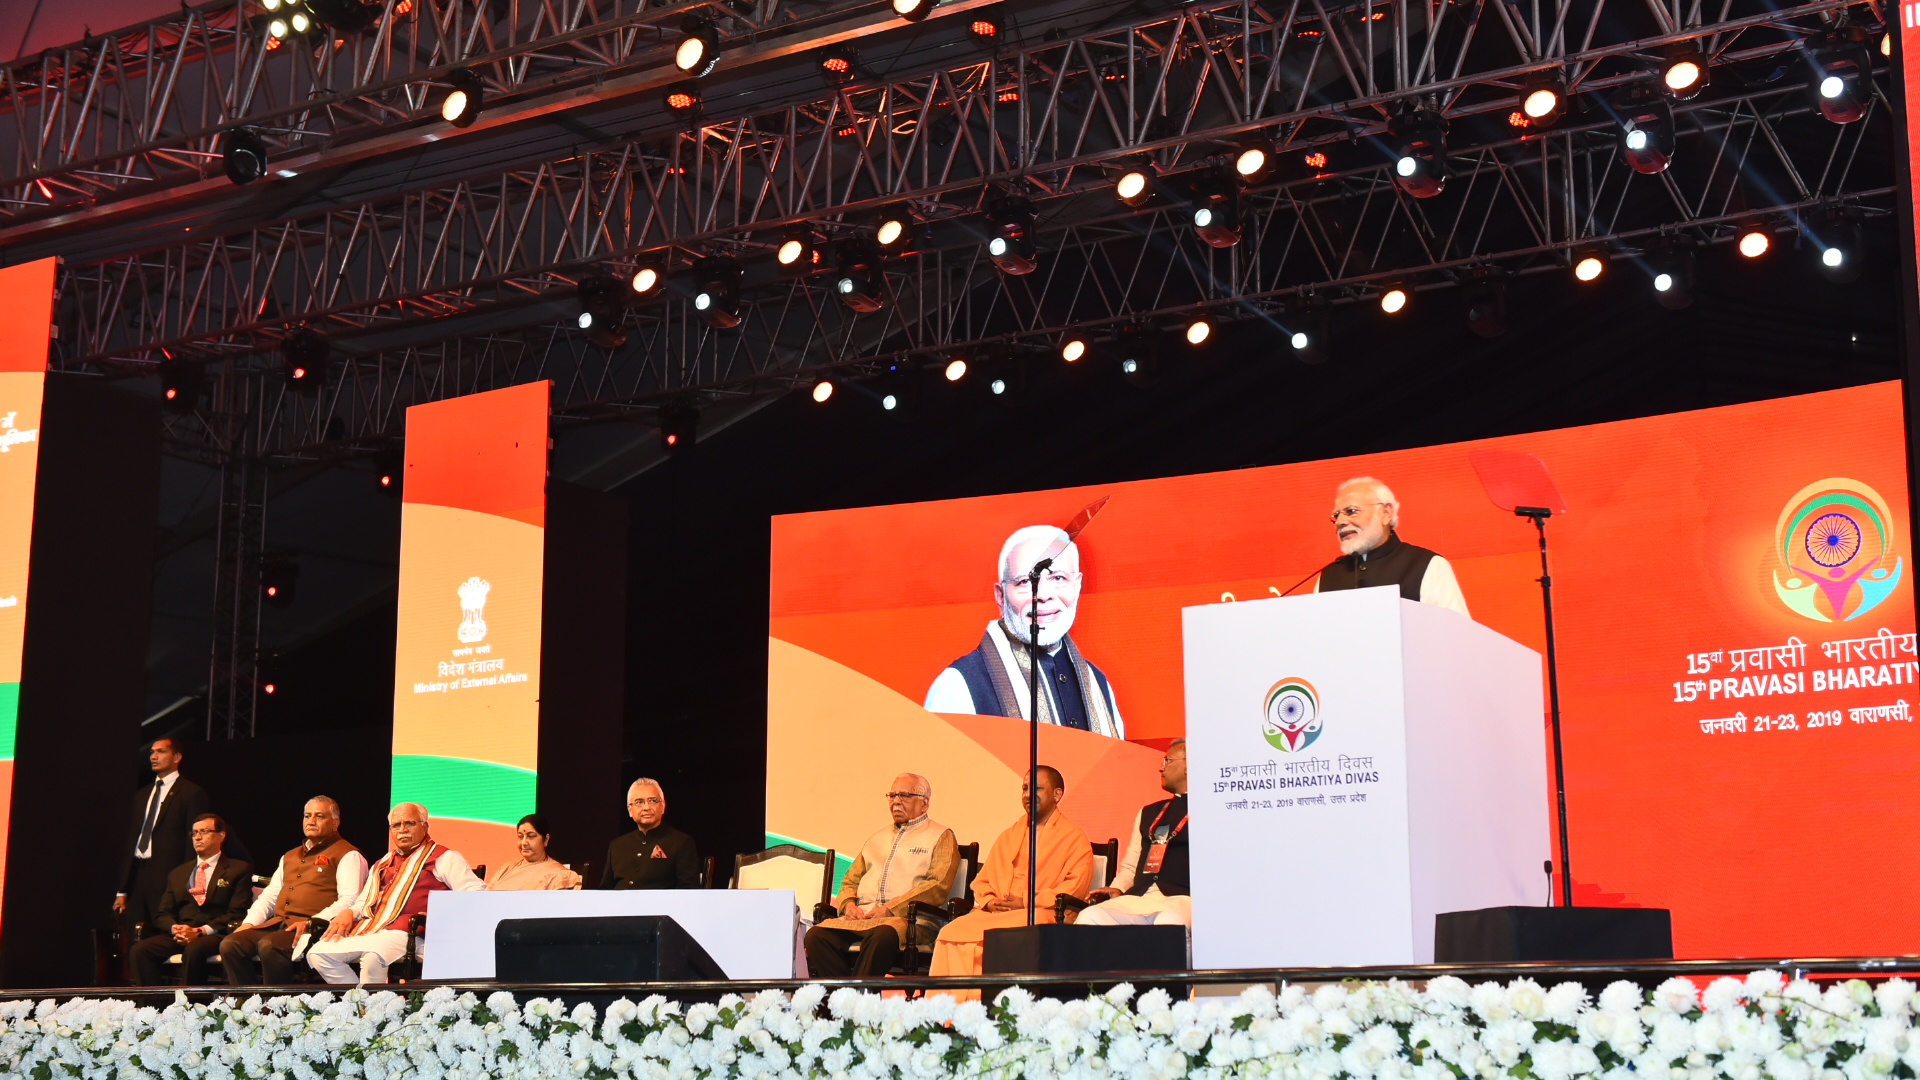 Prime Minister delivers his Address at Inauguration of 15th Pravasi Bhartiya Divas Convention 2019